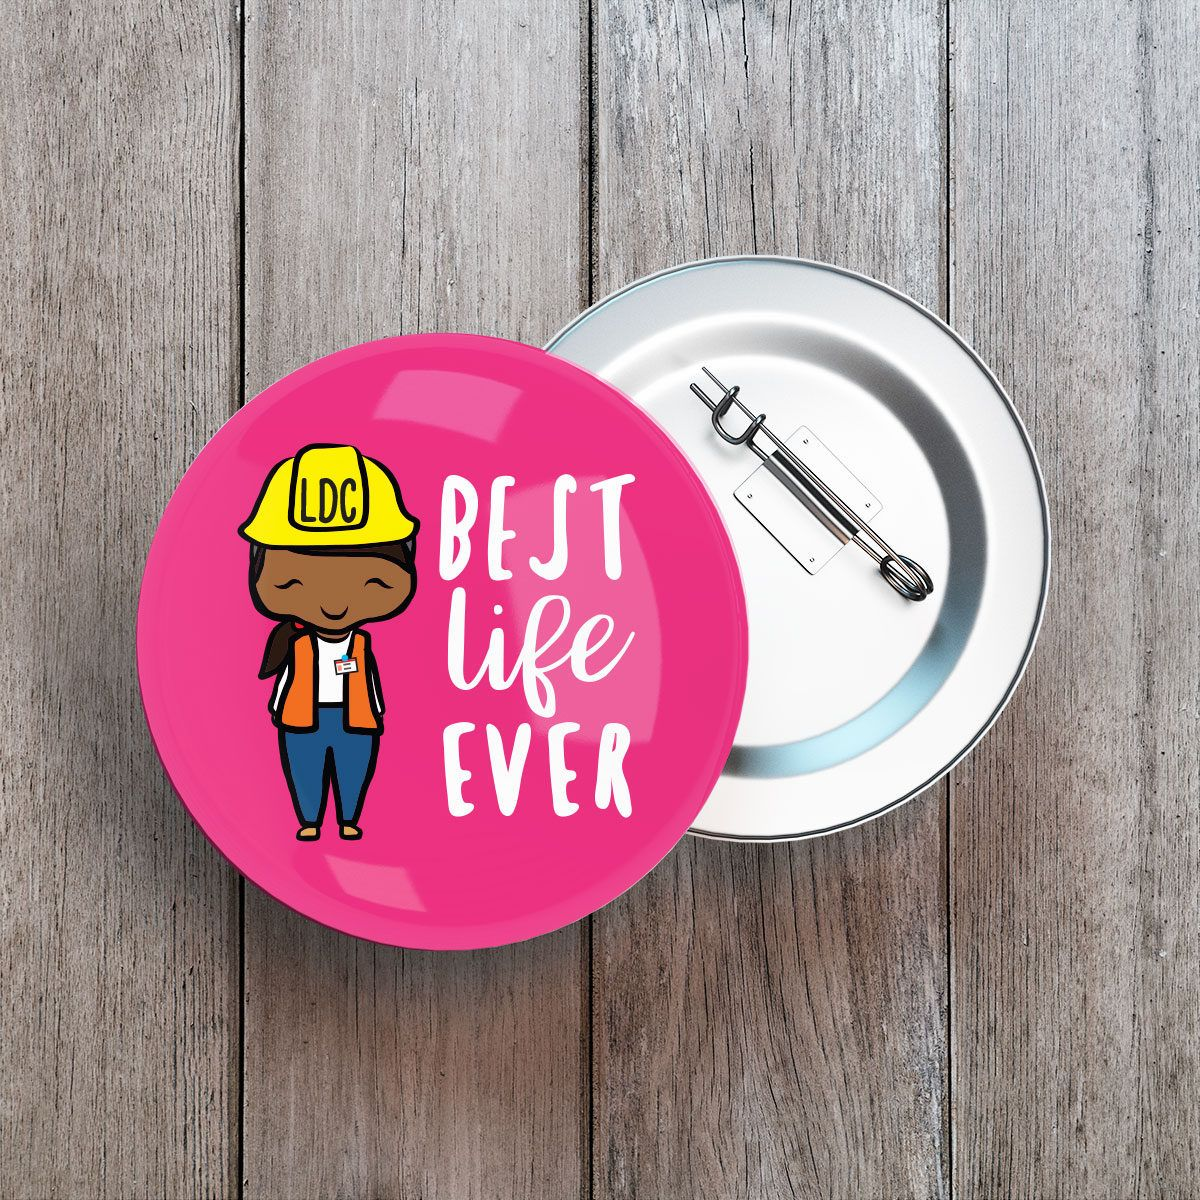 Best Life Ever Button Badge Pin Set.